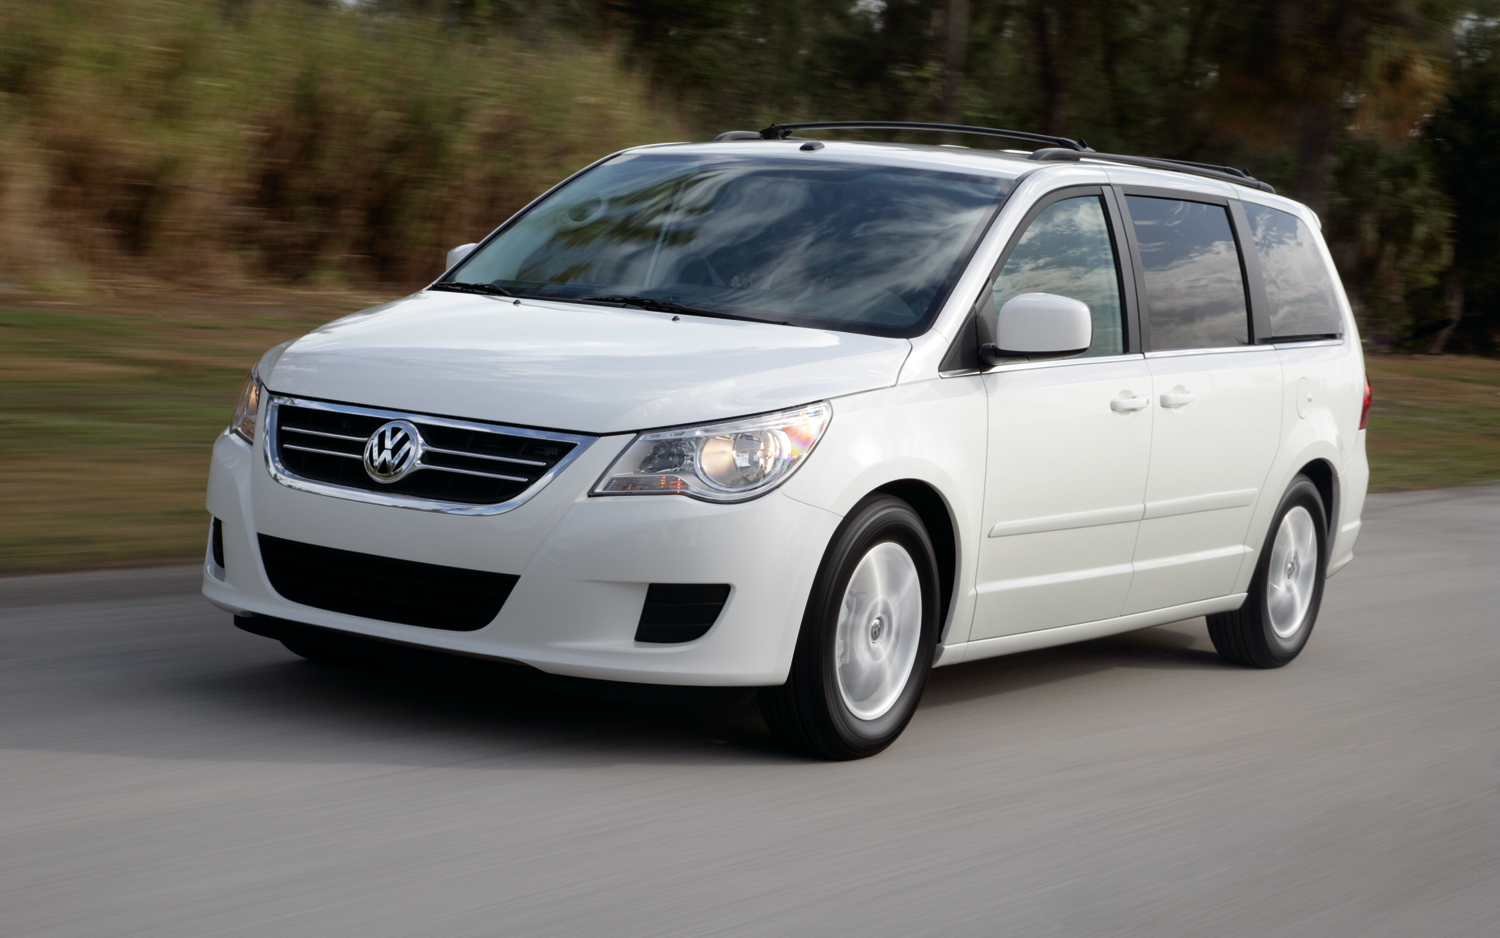 2012 volkswagen routan sel first drive motortrend. Black Bedroom Furniture Sets. Home Design Ideas